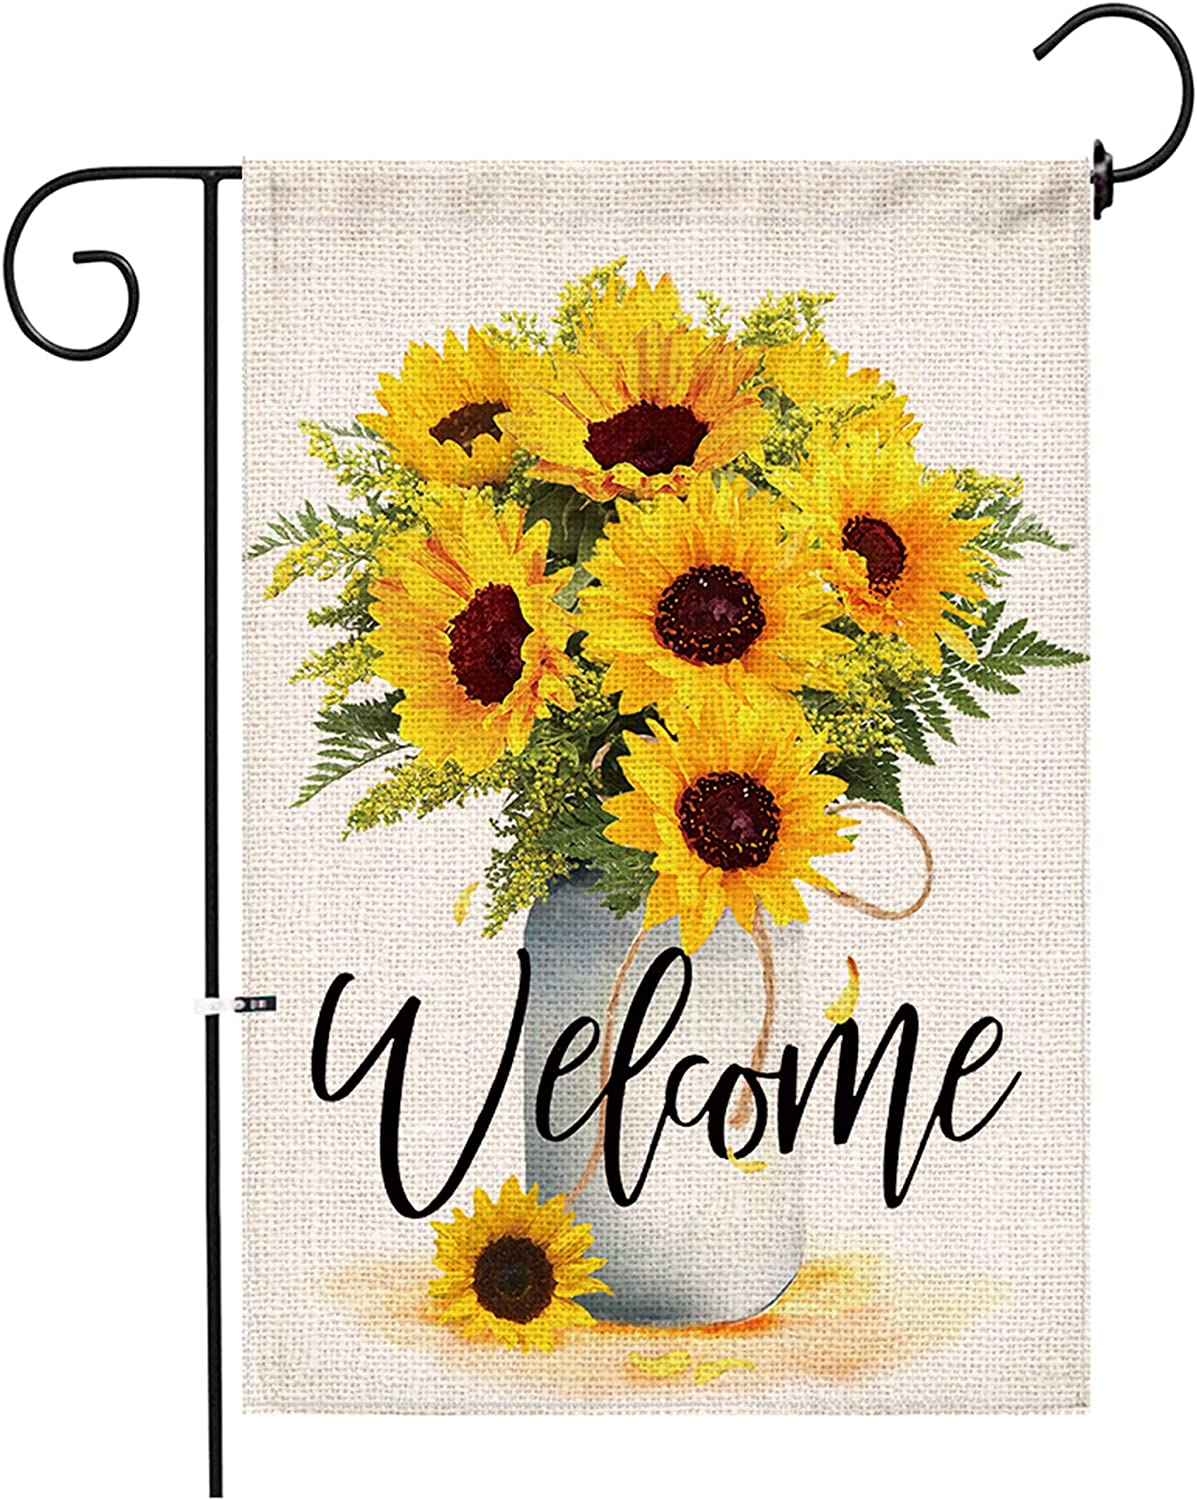 Hexagram Sunflower Arrangement Vase Welcome Garden Flag Double Sided,Burlap Summer Fall Farmhouse Outdoor Welcome Garden Decor,Small Garden Flag 12x18 Prime